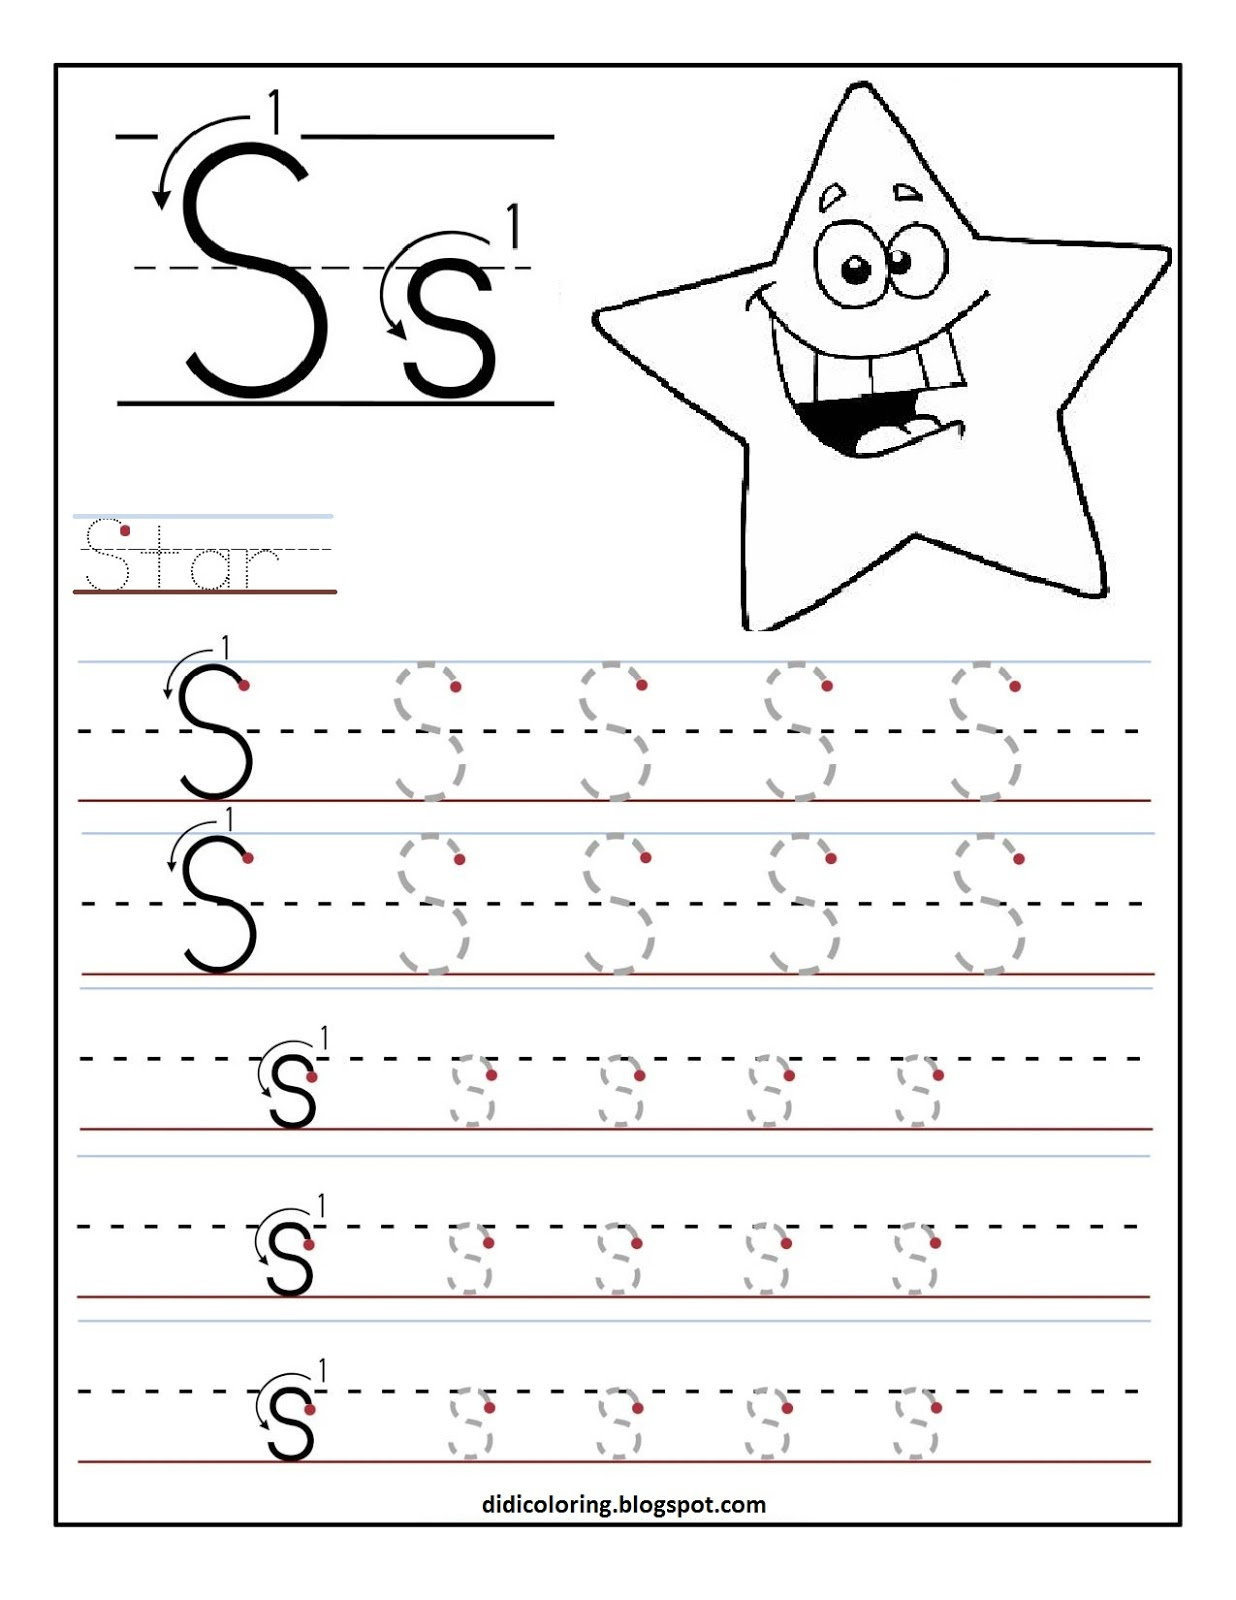 Free printable worksheet letter S for your child to learn and write